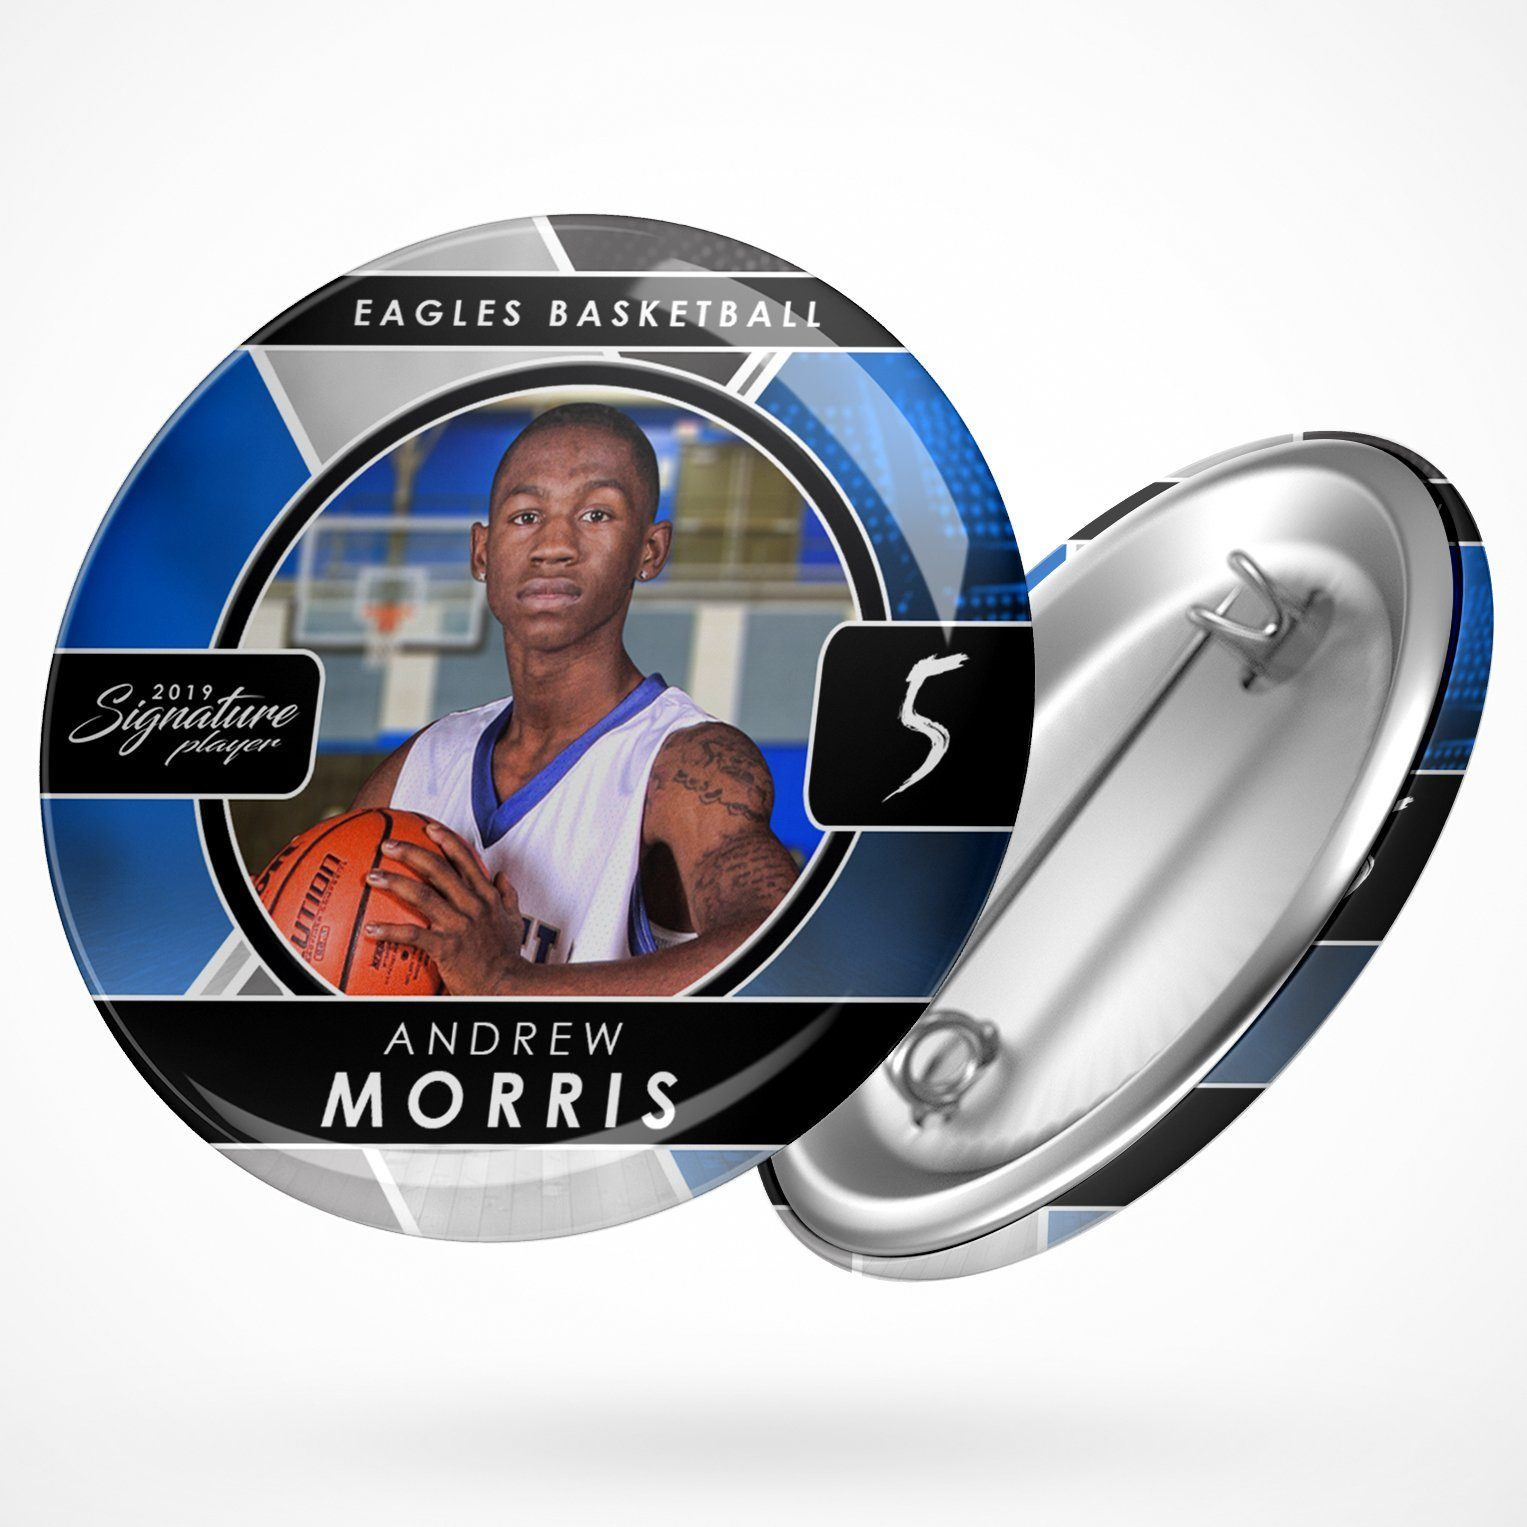 Signature Player - Basketball - V2 - Drop In Button Template-Photoshop Template - Photo Solutions